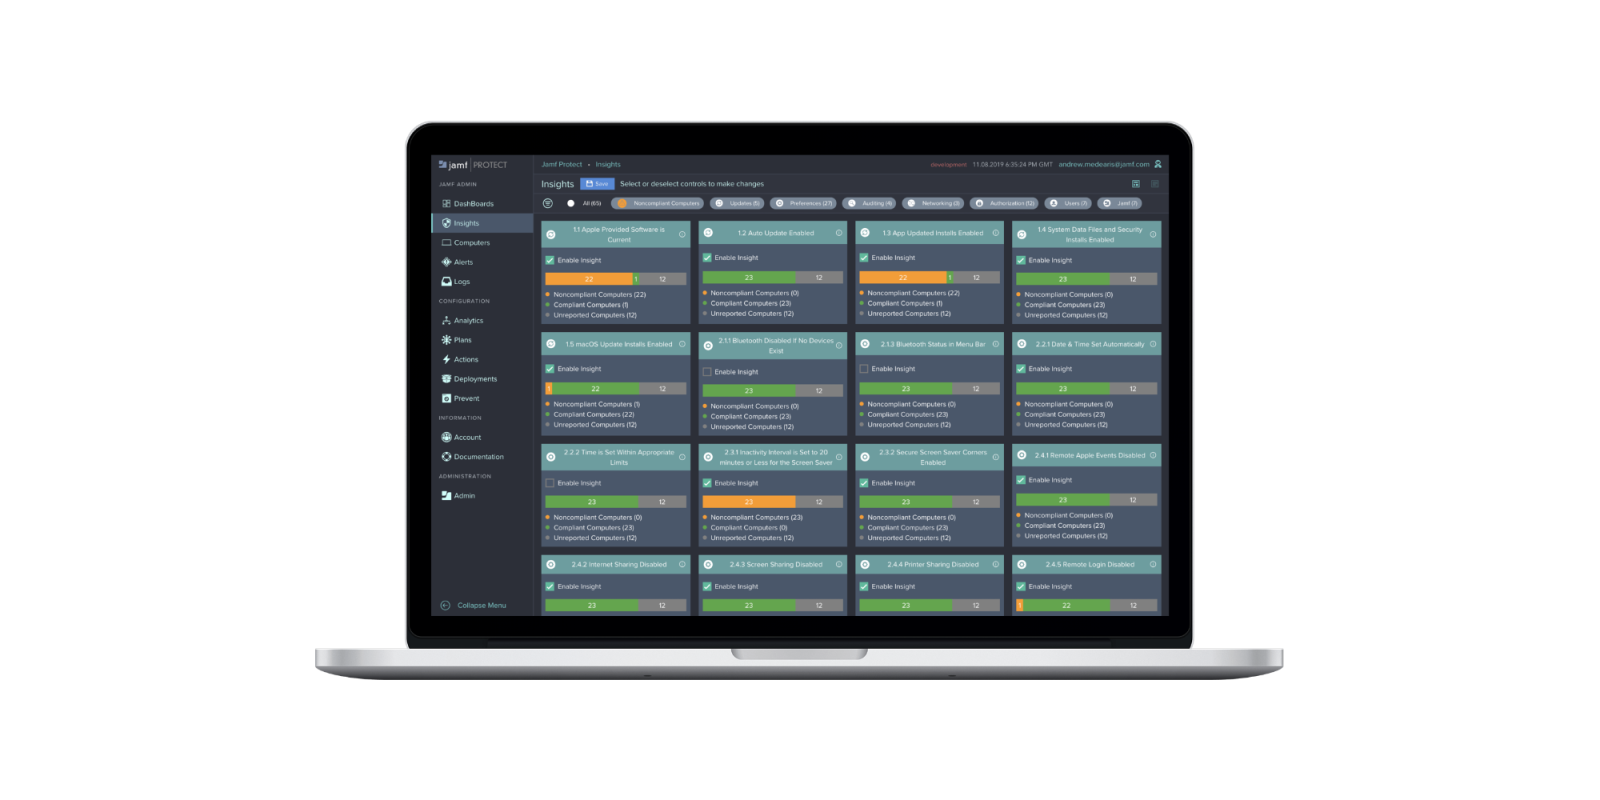 Jamf launches Jamf Protect, an enterprise endpoint protection solution built native for macOS